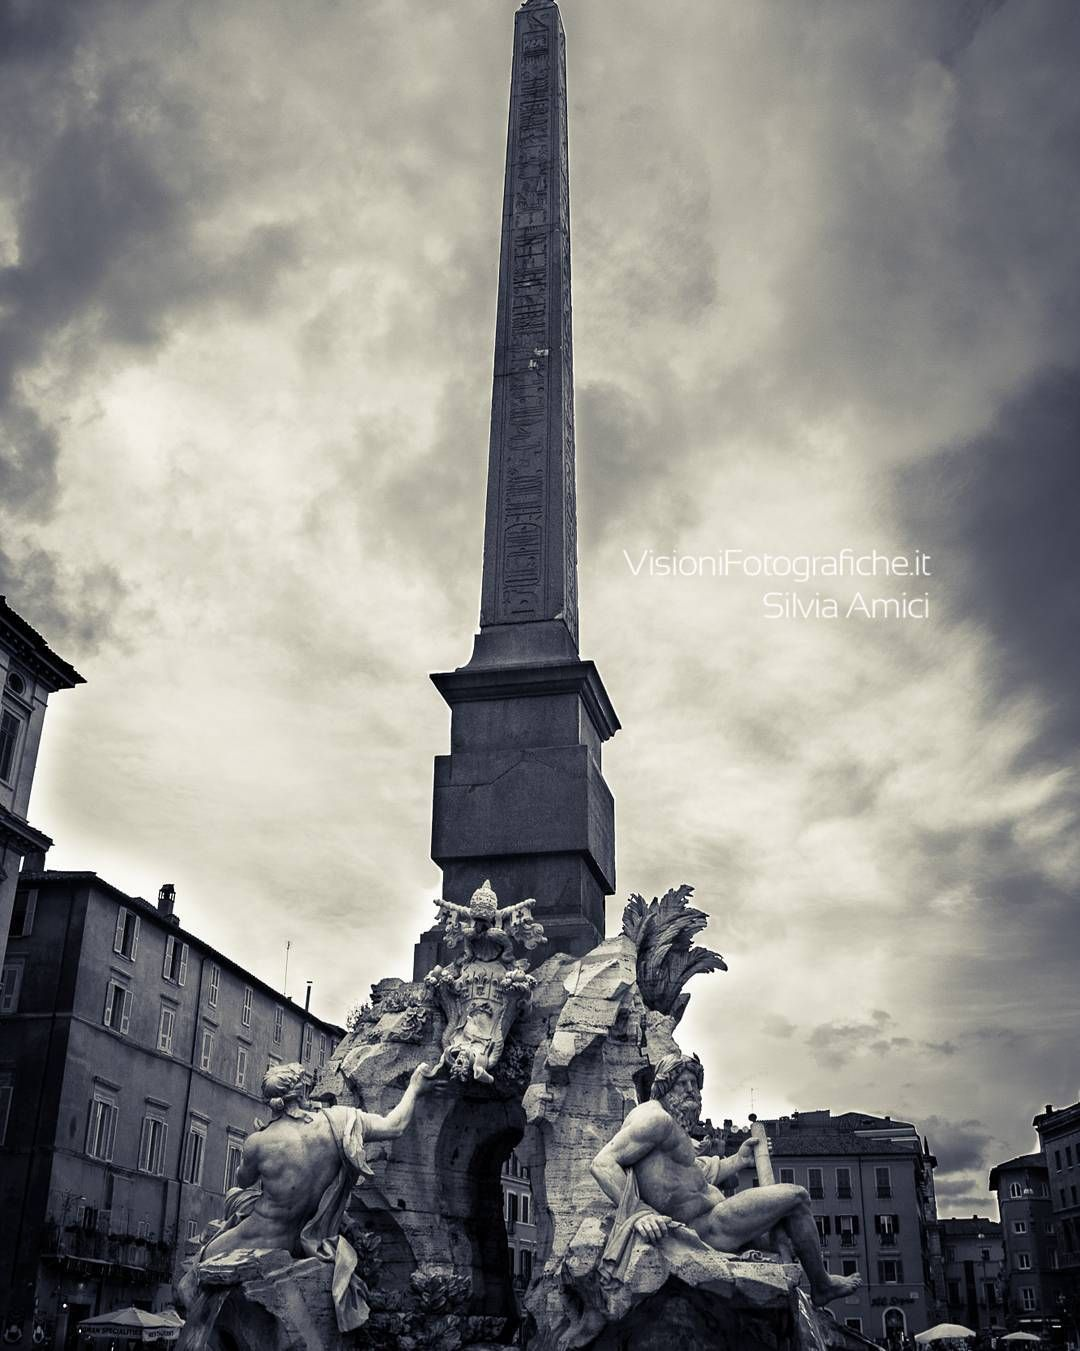 Fountain of the Four Rivers in the Piazza Navona in Rome it was designed by Gian Lorenzo Bernini.  #travelgram #thegoodlife #rome  #vacaymode #traveltips #travelfriendly #wheretonext #architecture #travel #history #picoftheday #photooftheday #instagood #monument #italy #love #sky #city #trip #beautiful #buildings  #tourism #holiday #vsco #art #photography #fourriversfountain  #igers #ancient #instatravel